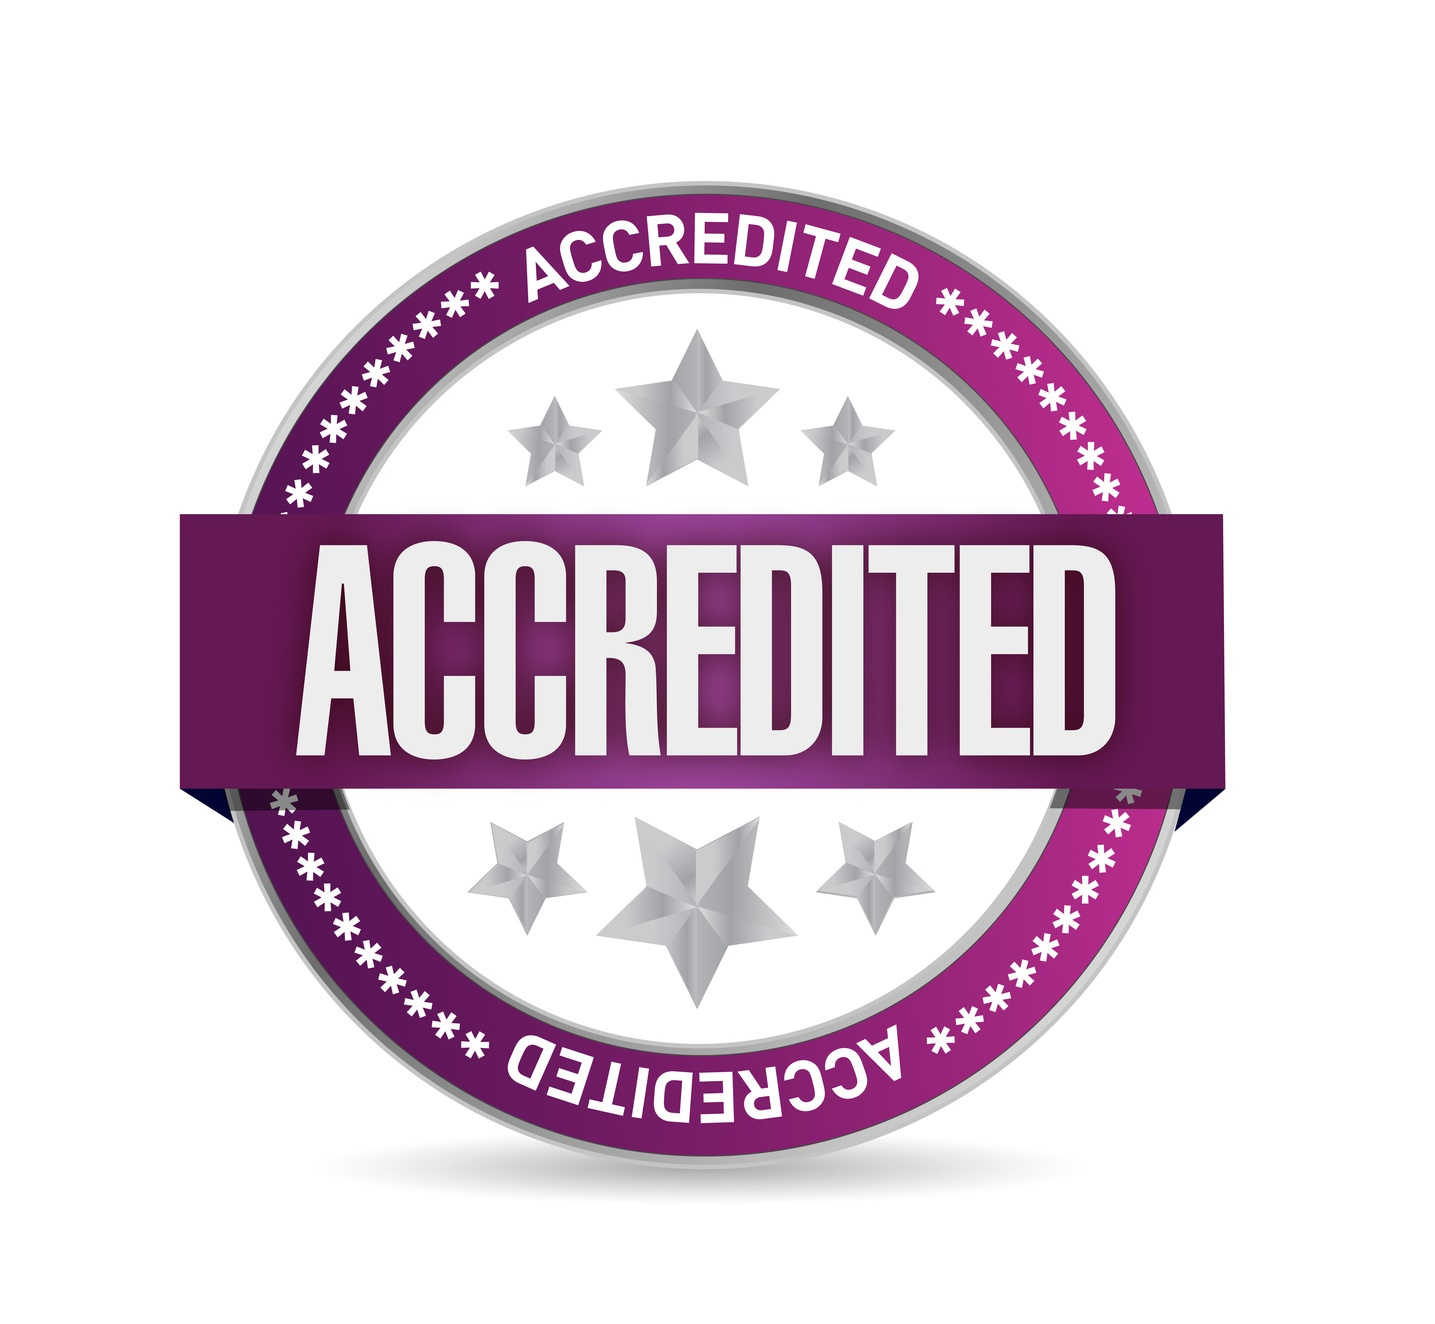 Proudly Accredited. Lash Extension Training you can trust